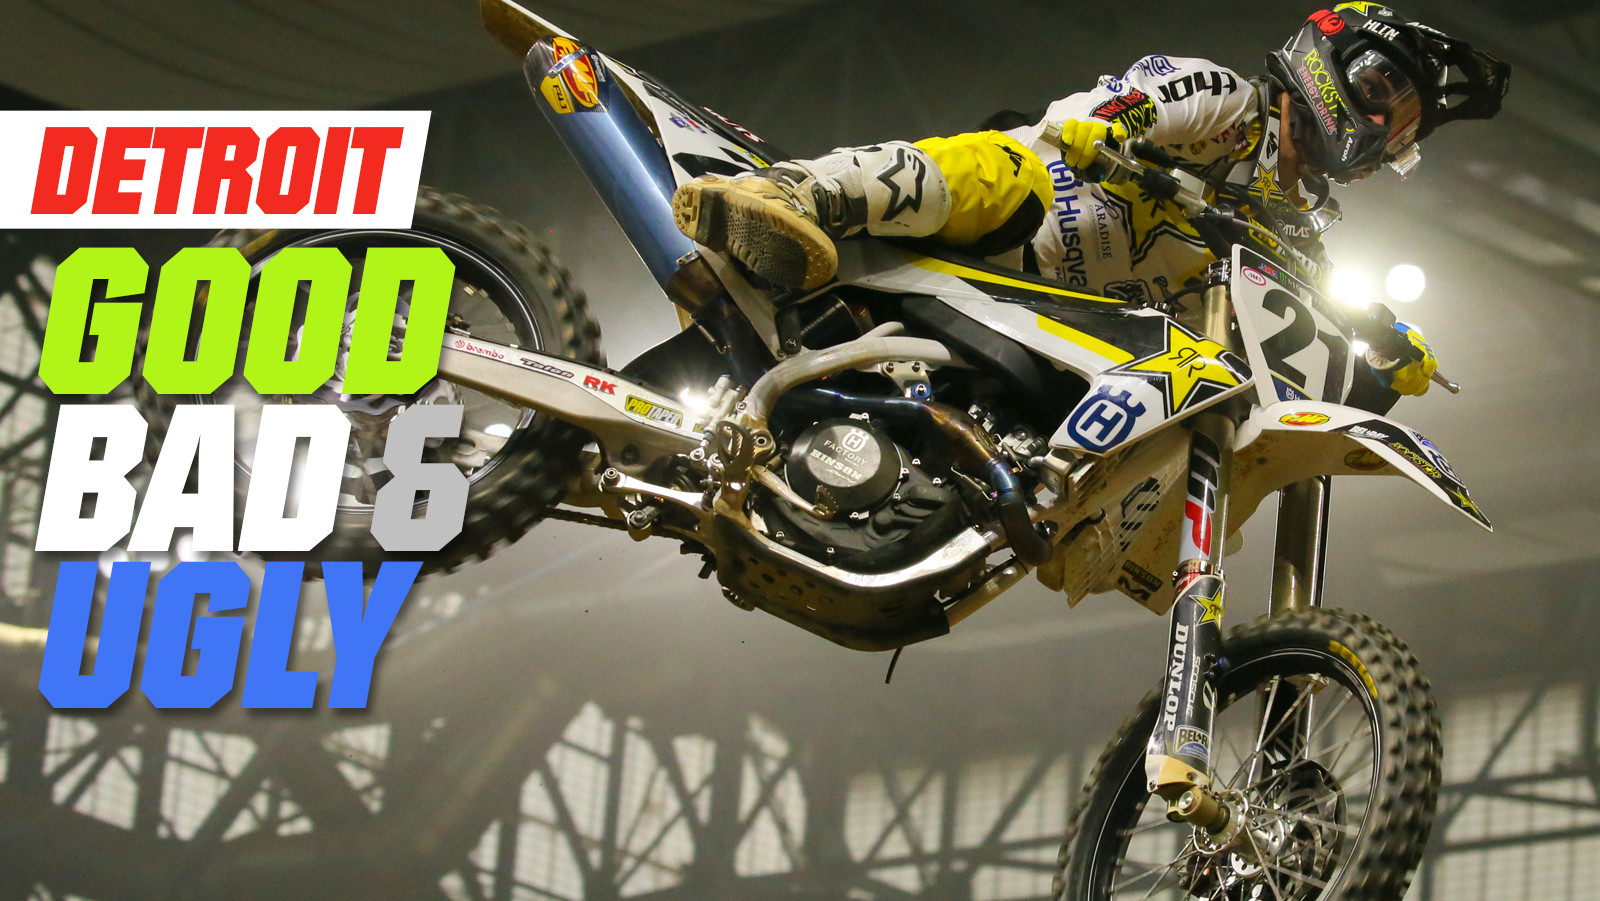 Detroit Supercross - The Good, the Bad, and the Ugly